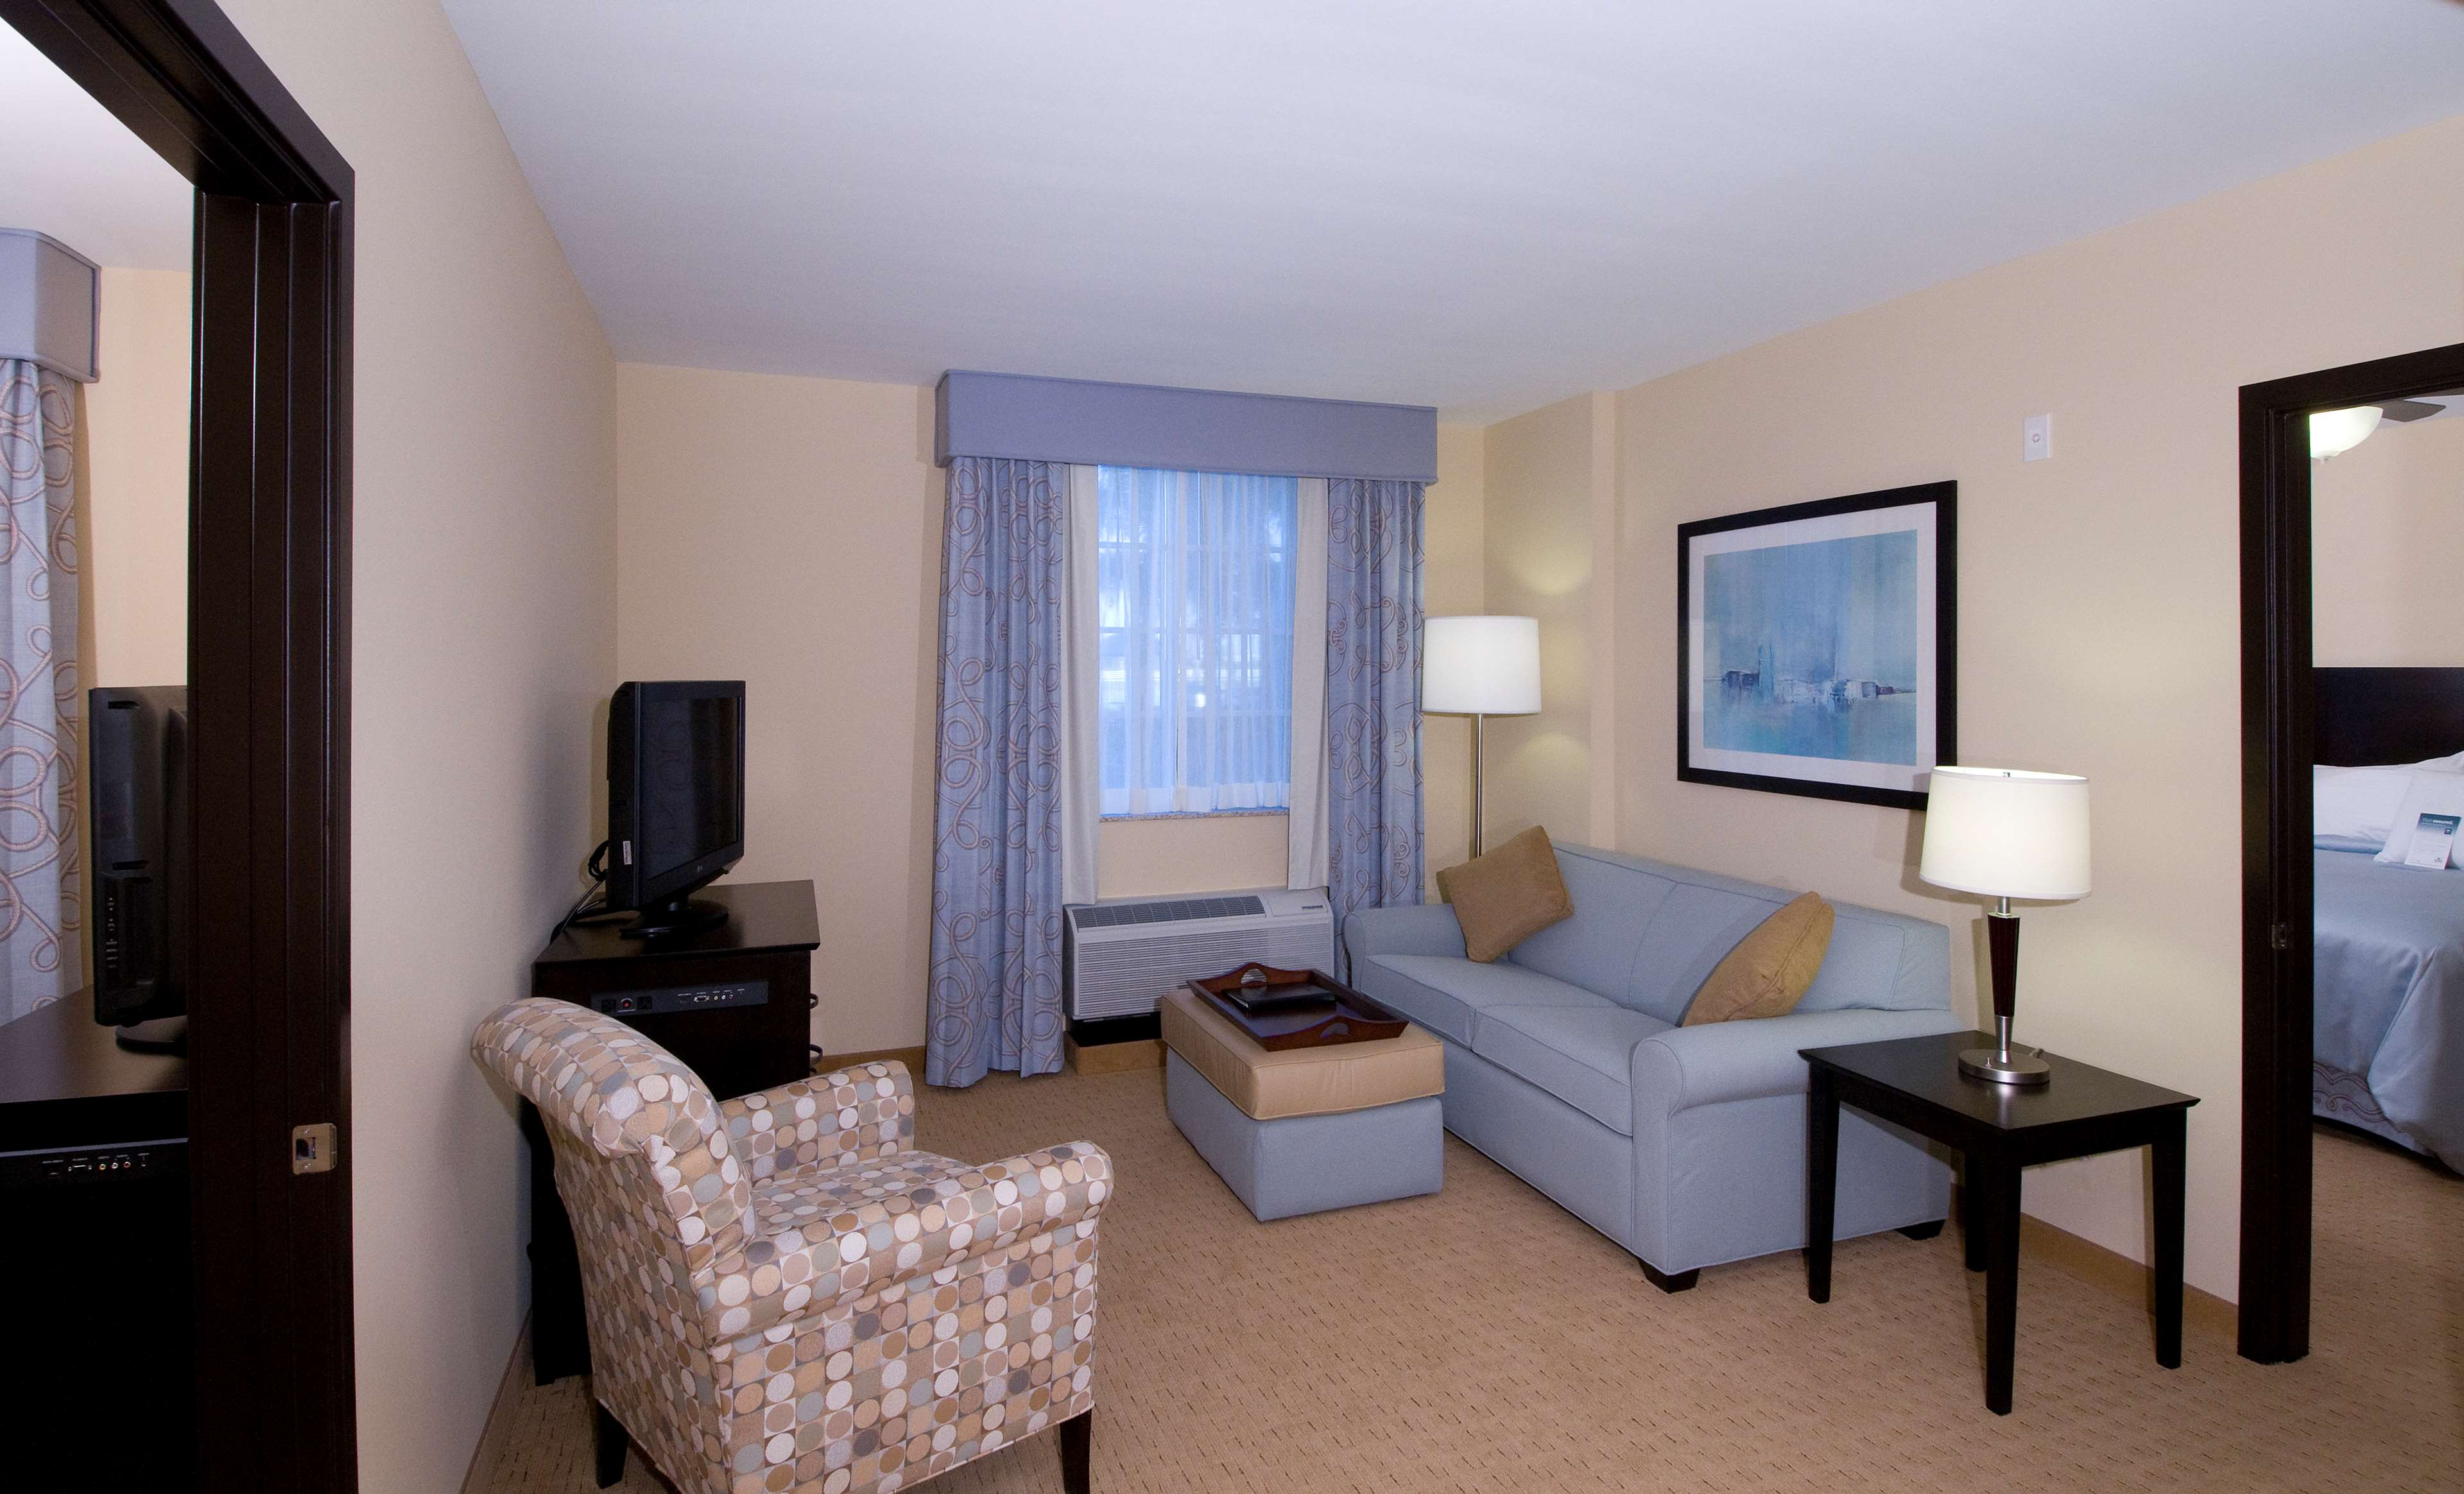 Homewood Suites by Hilton Port St. Lucie-Tradition image 10